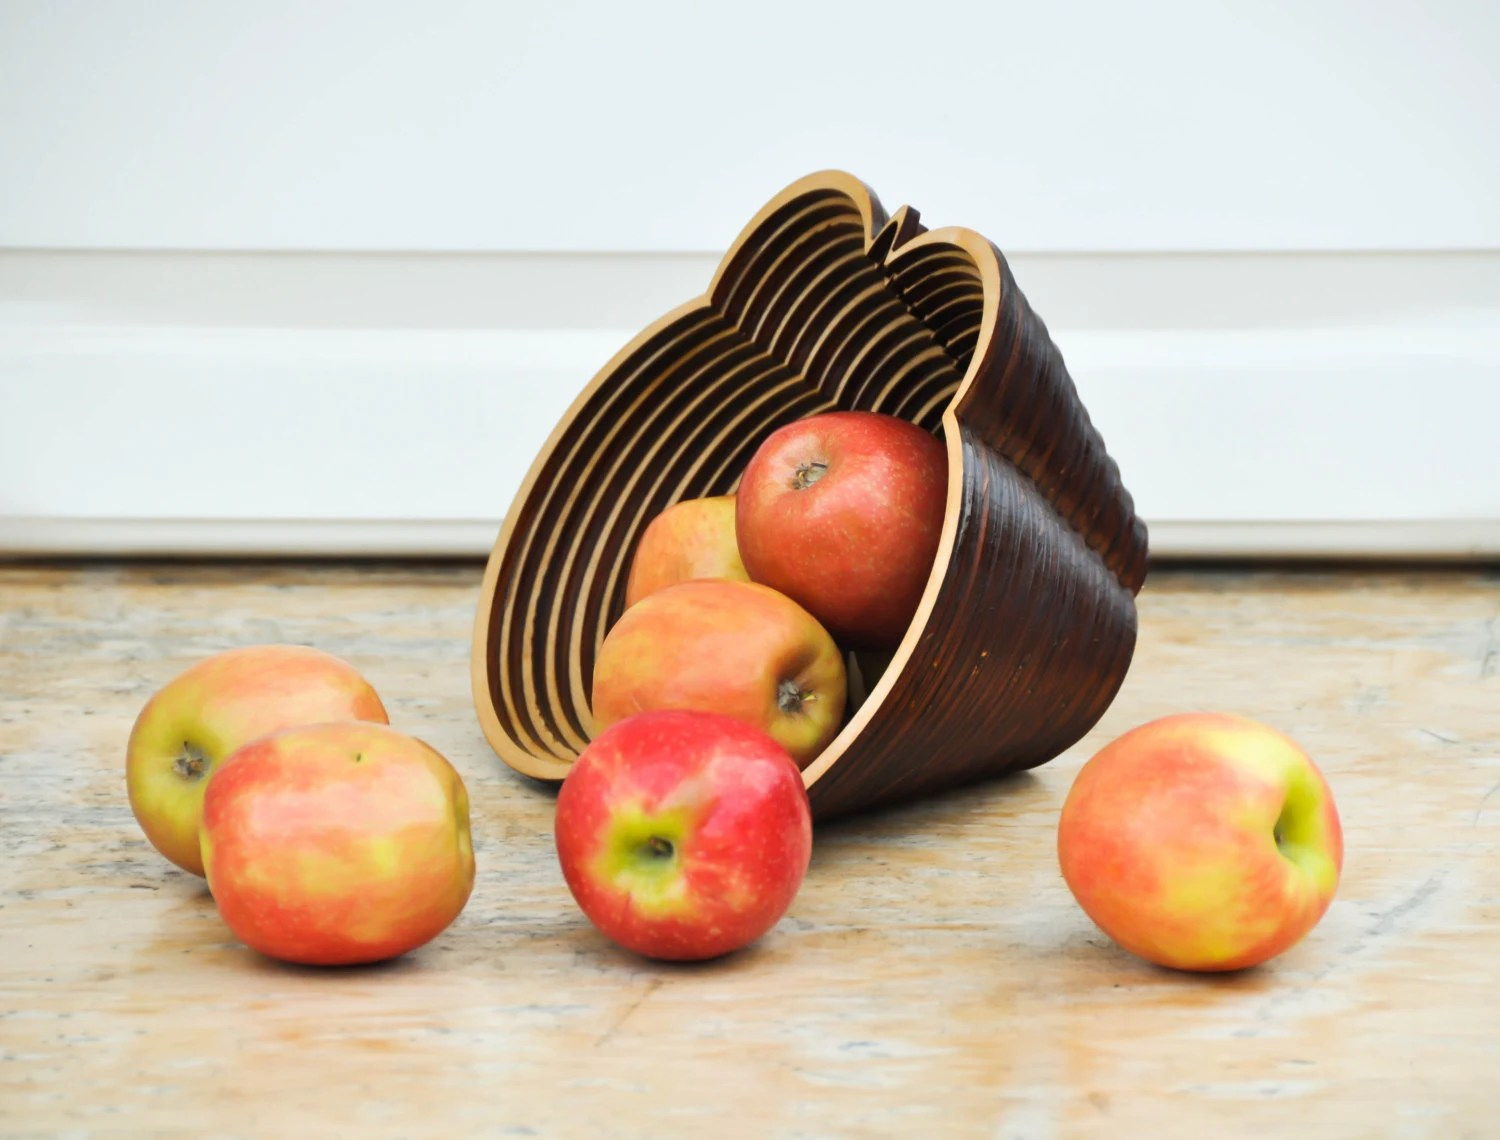 Wooden decorative bowl - rustic home decor - hand made wooden dish - geometric fruit bowl - wedding gift - housewarming gift - PictureInADream